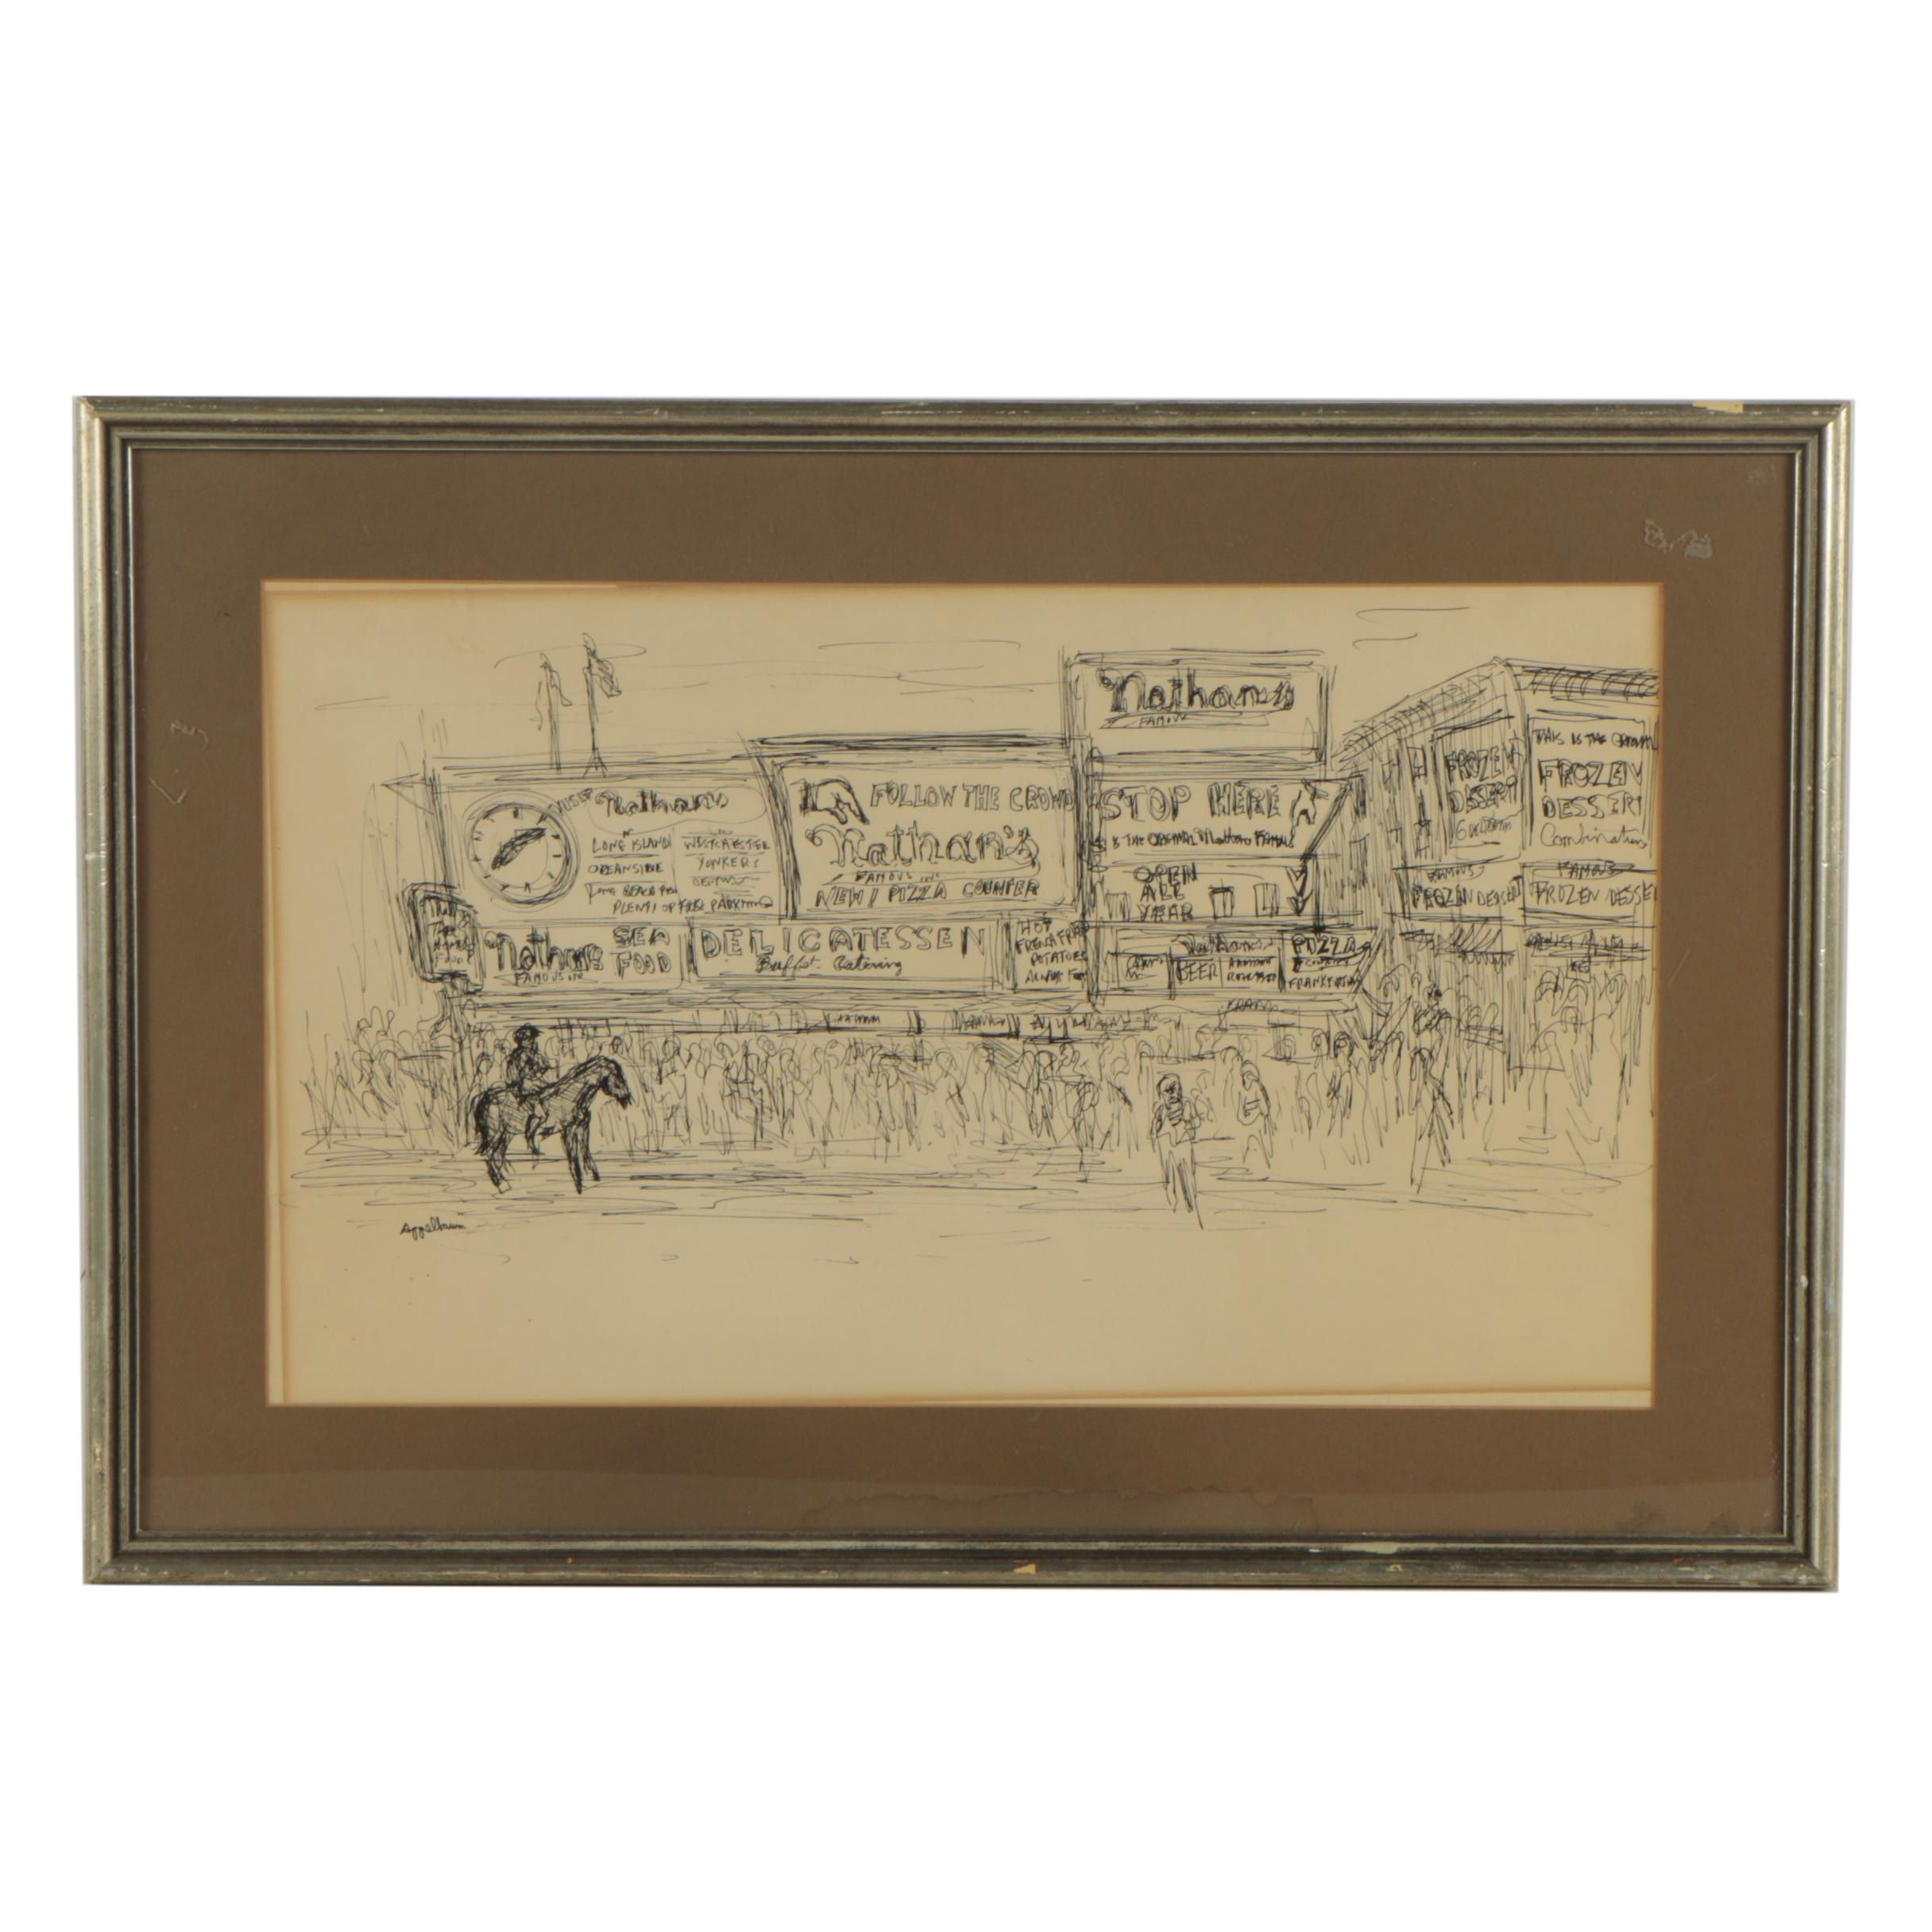 Appelbaum Pen and Ink Drawing of Coney Island